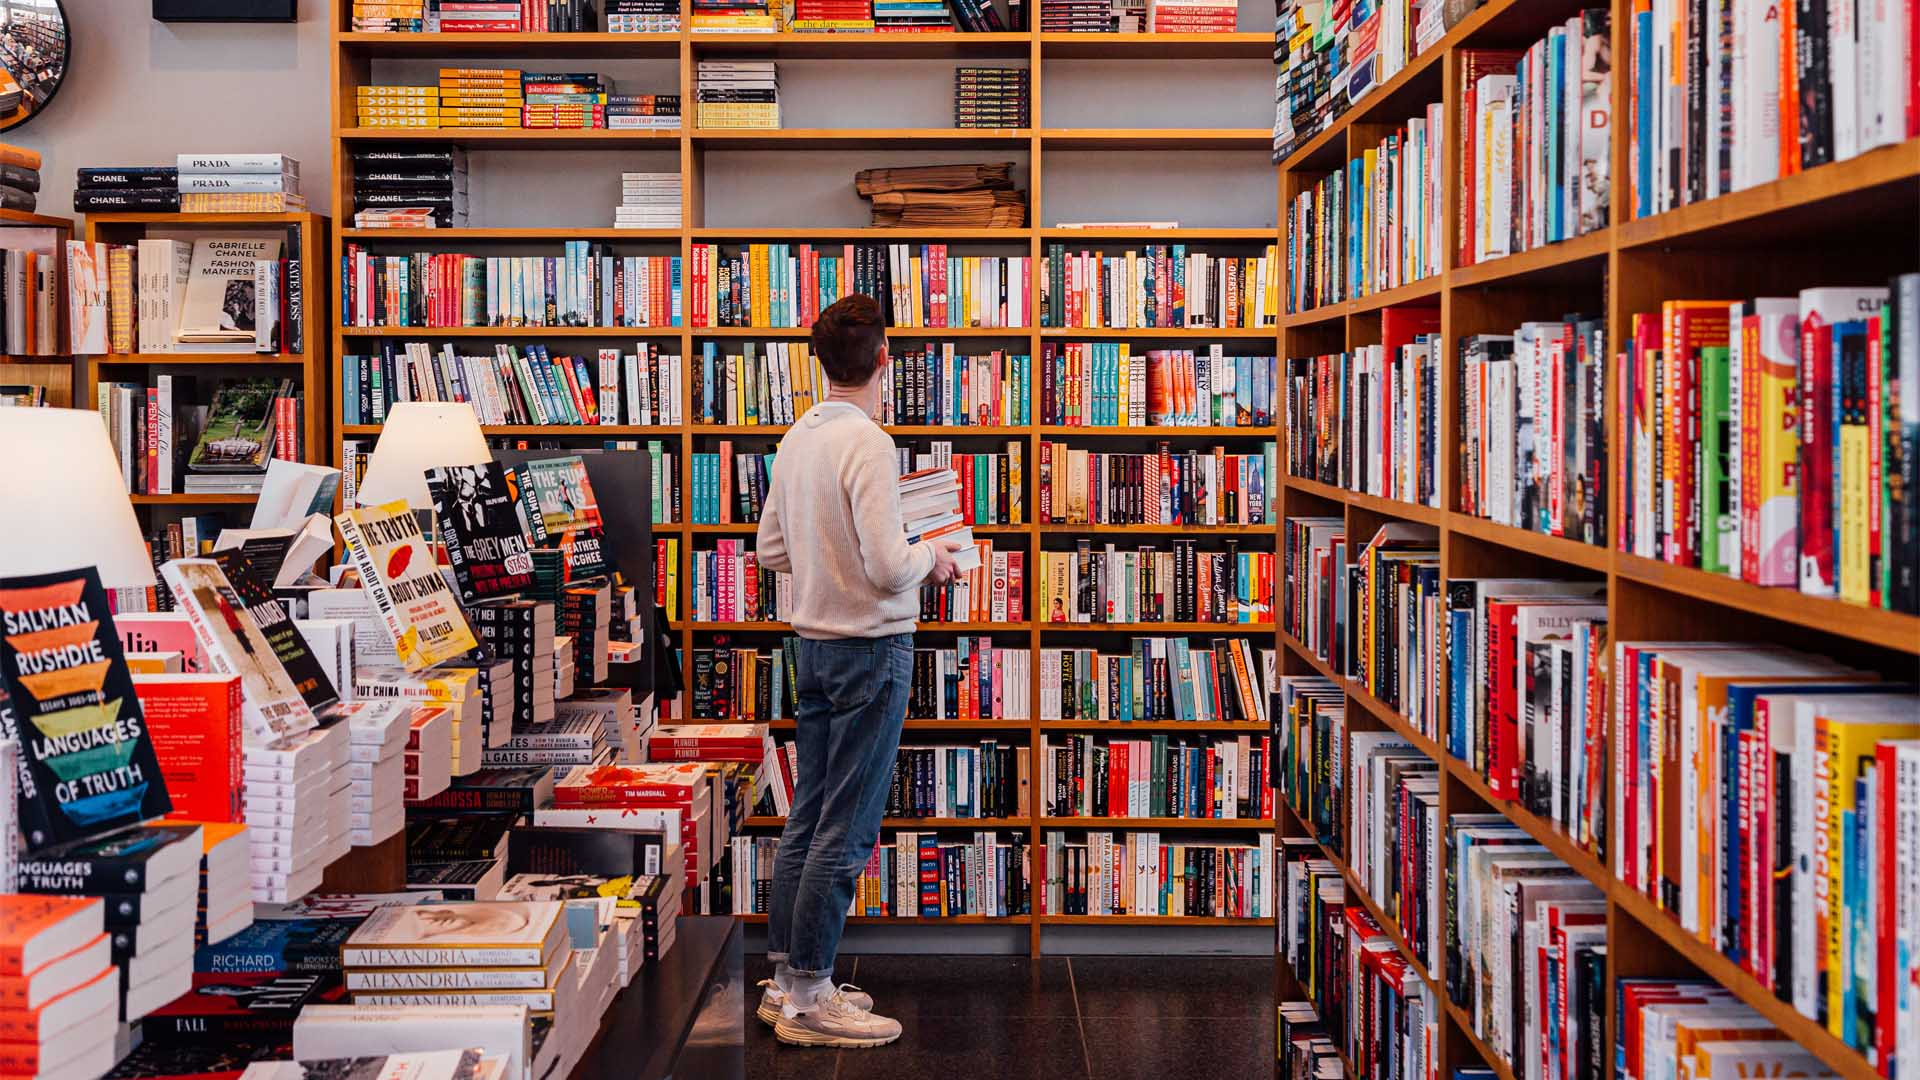 Where to Find a Good Read to Curl Up With This Weekend